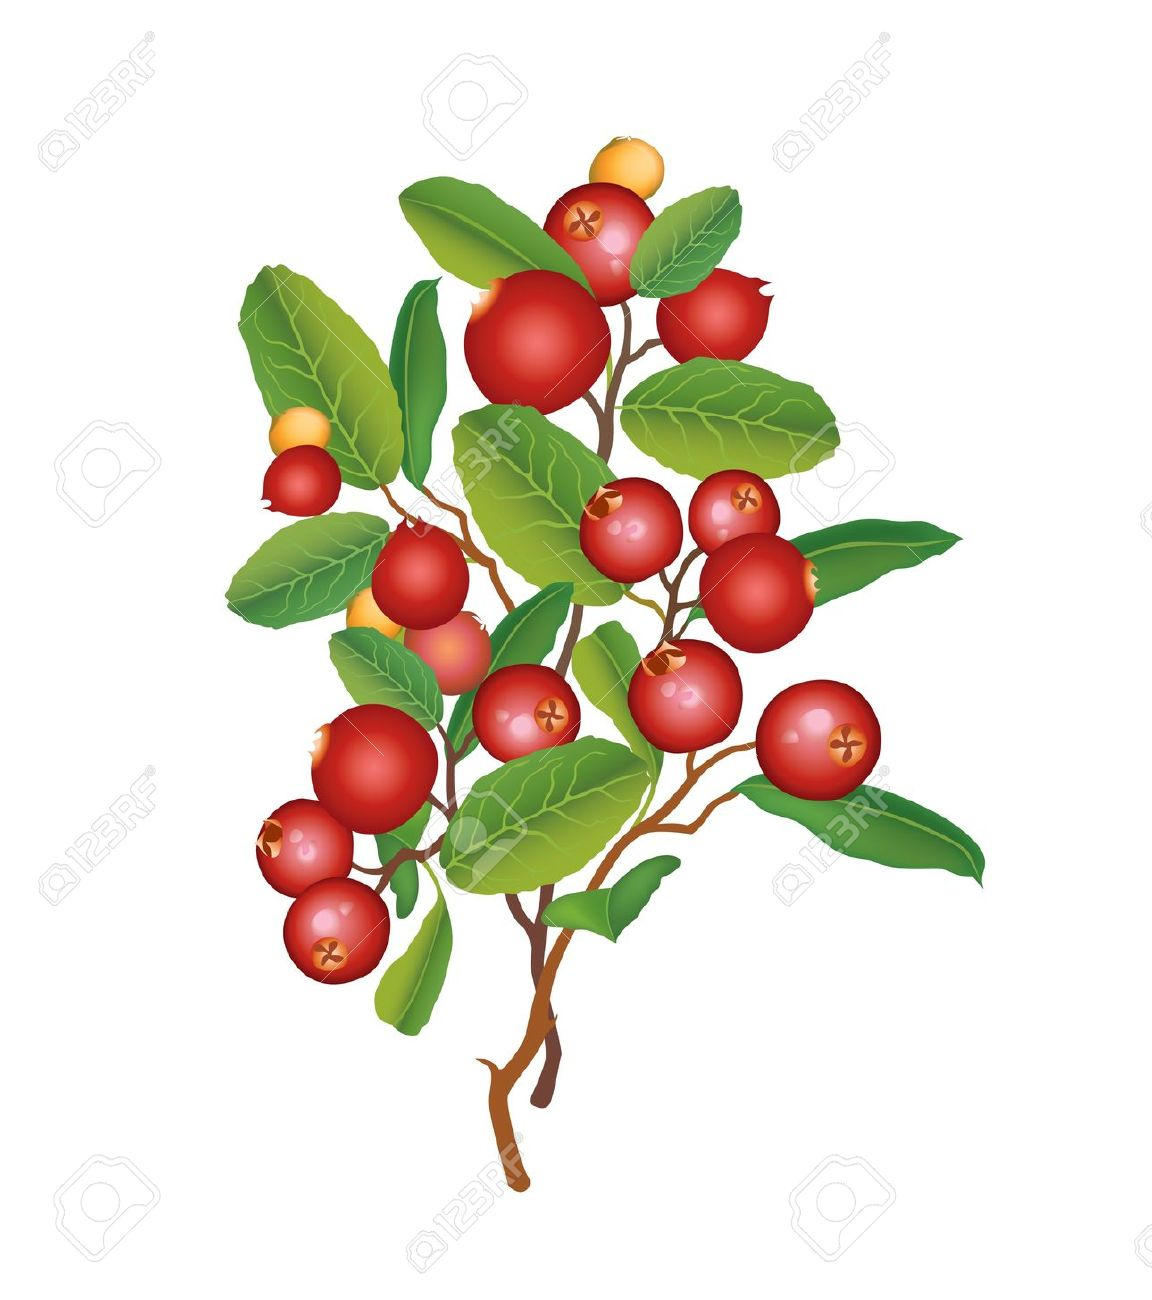 Cranberry Berry Garland Ripe Red Cranberries With Leaves Bush.